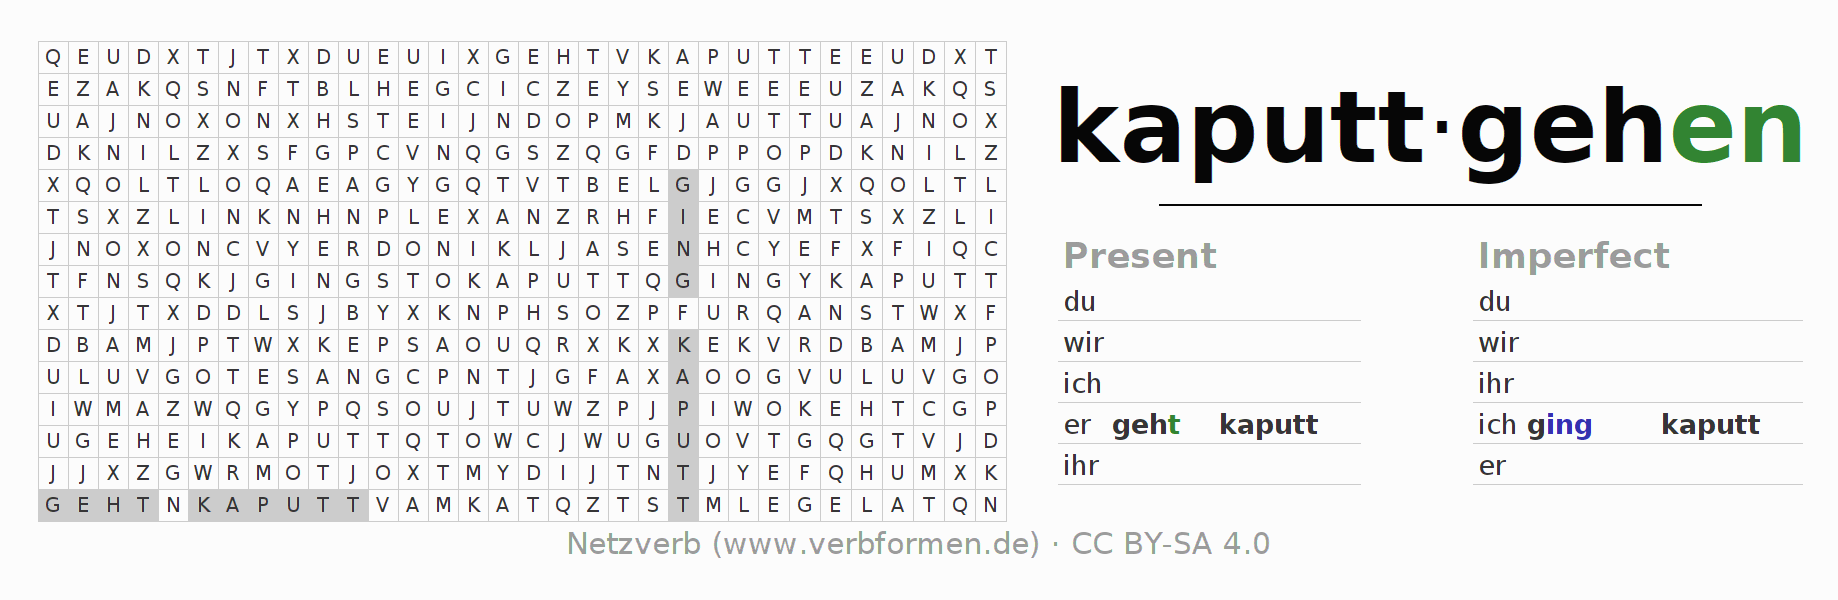 Word search puzzle for the conjugation of the verb kaputtgehen